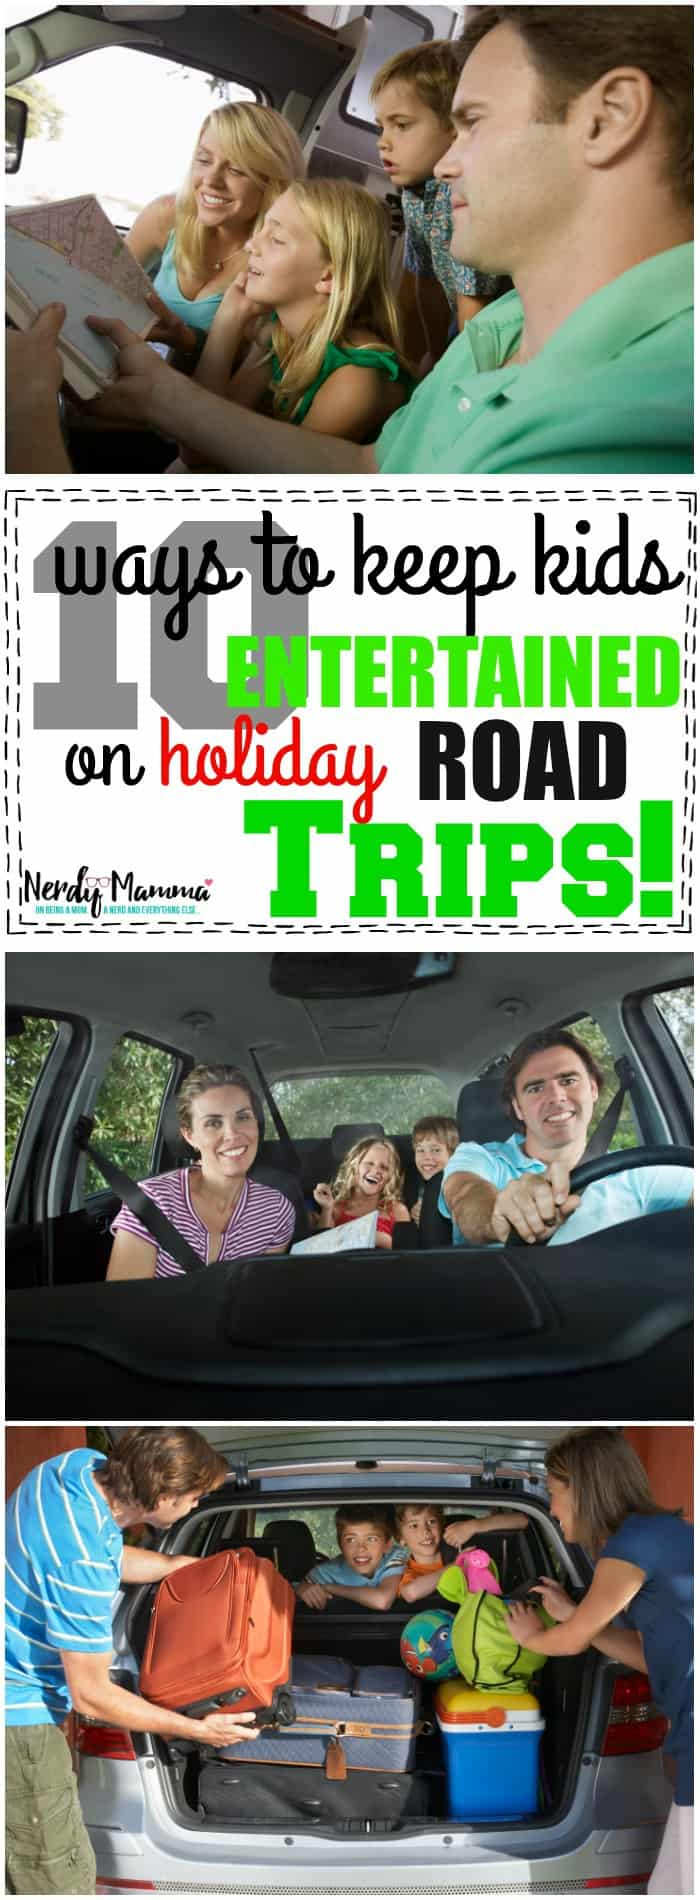 10 Ways to Keep Kids Entertained on Holiday Road Tips